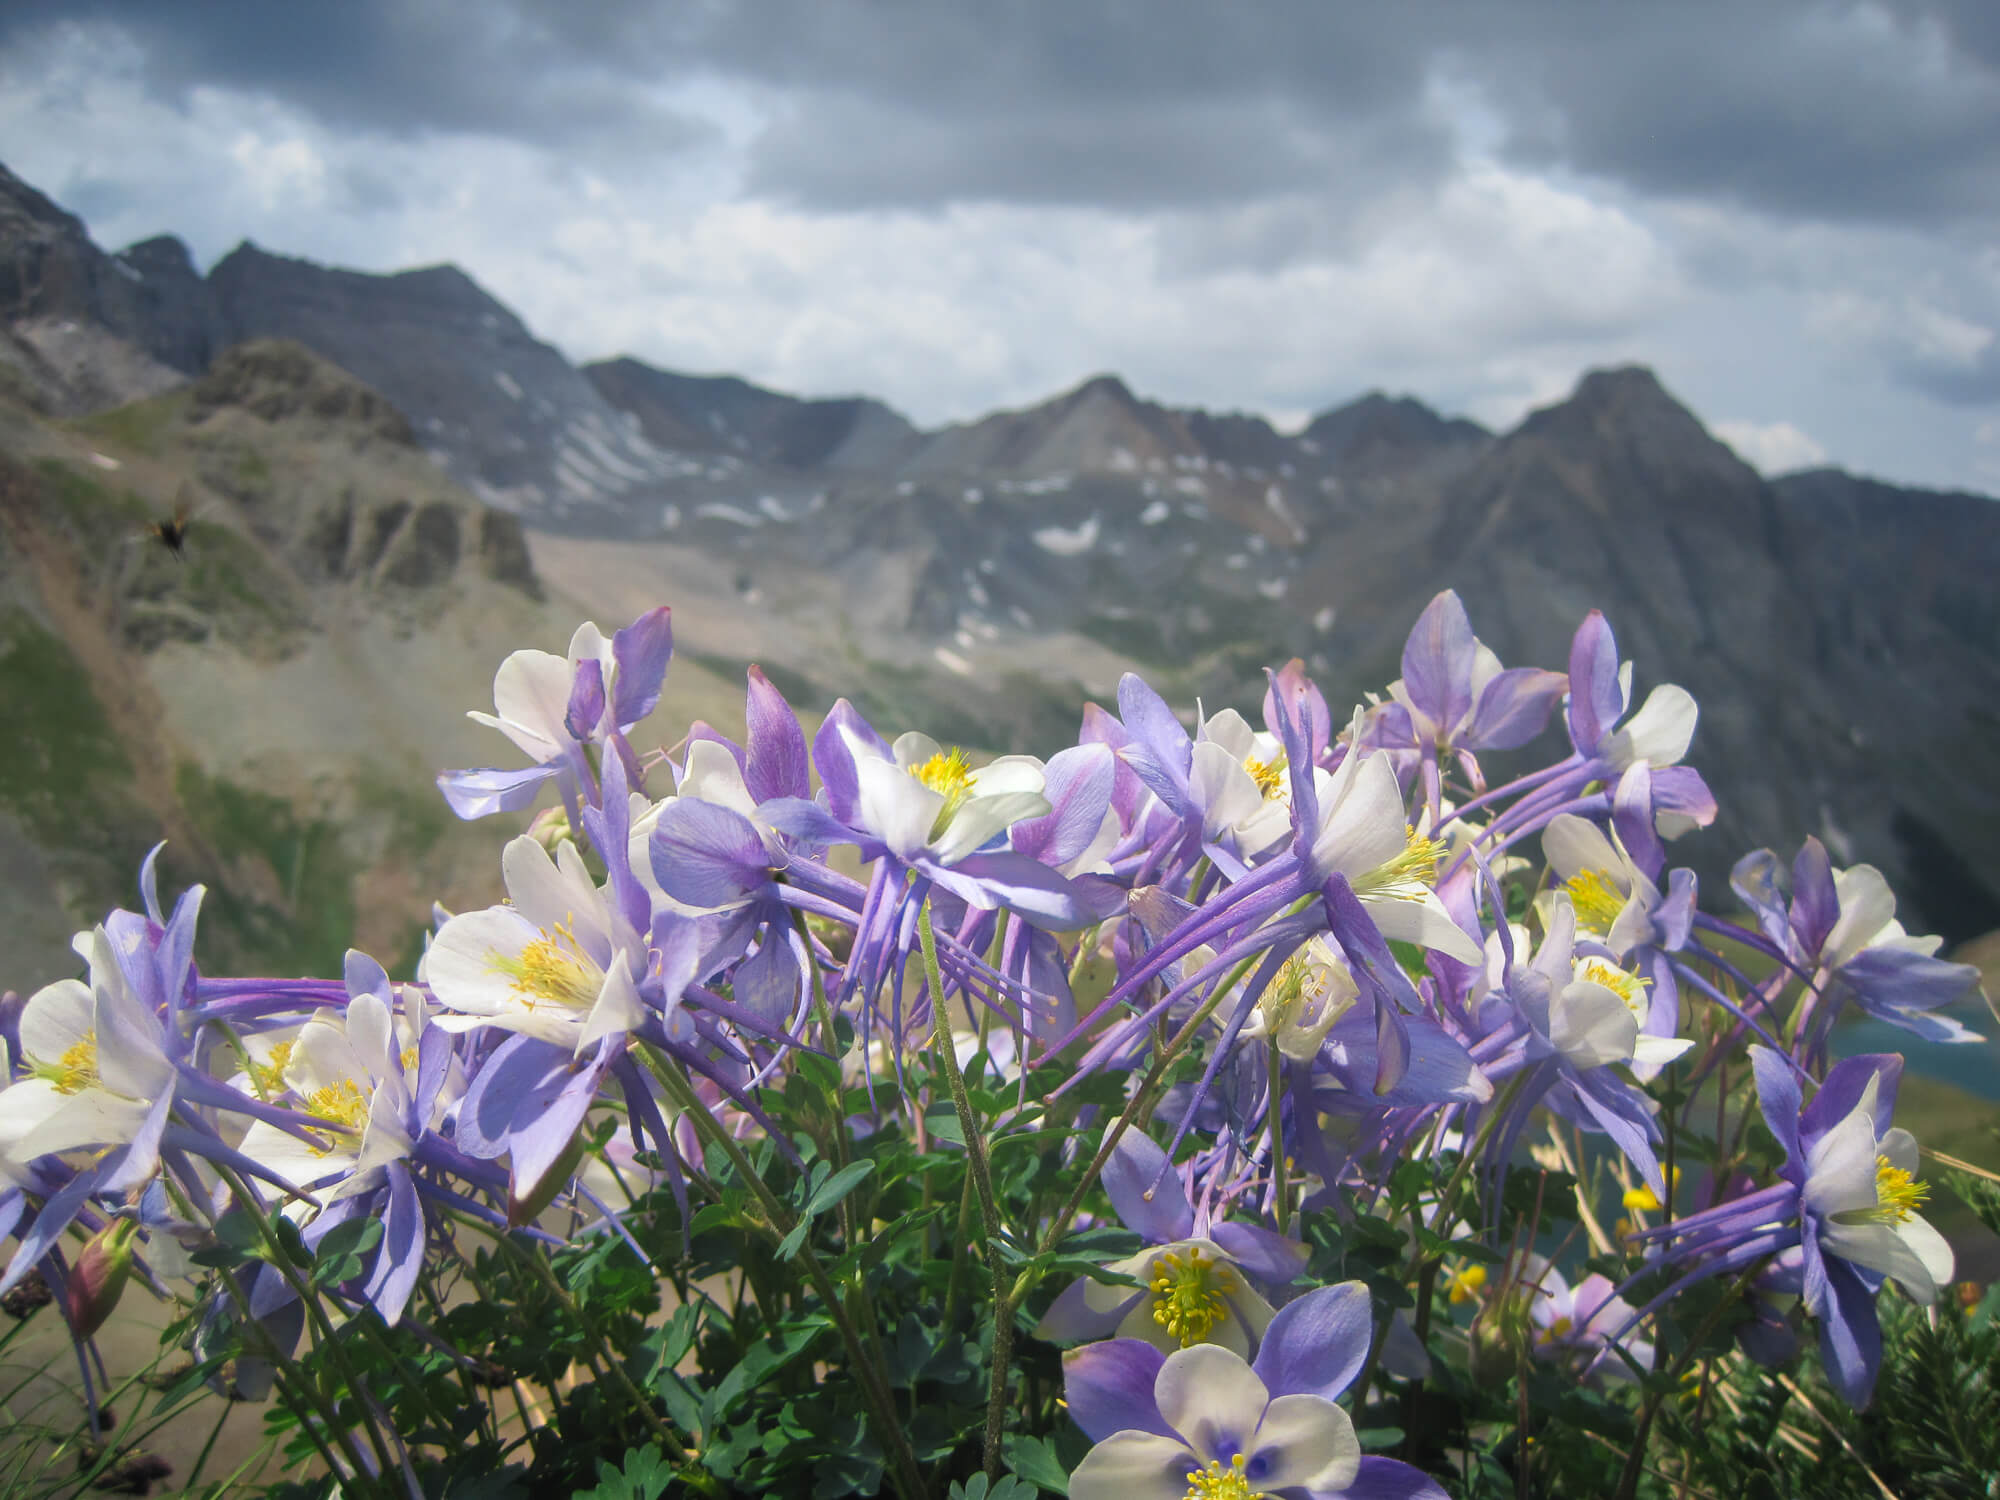 Columbines on the slopes of Mount Sneffels in southern Colorado